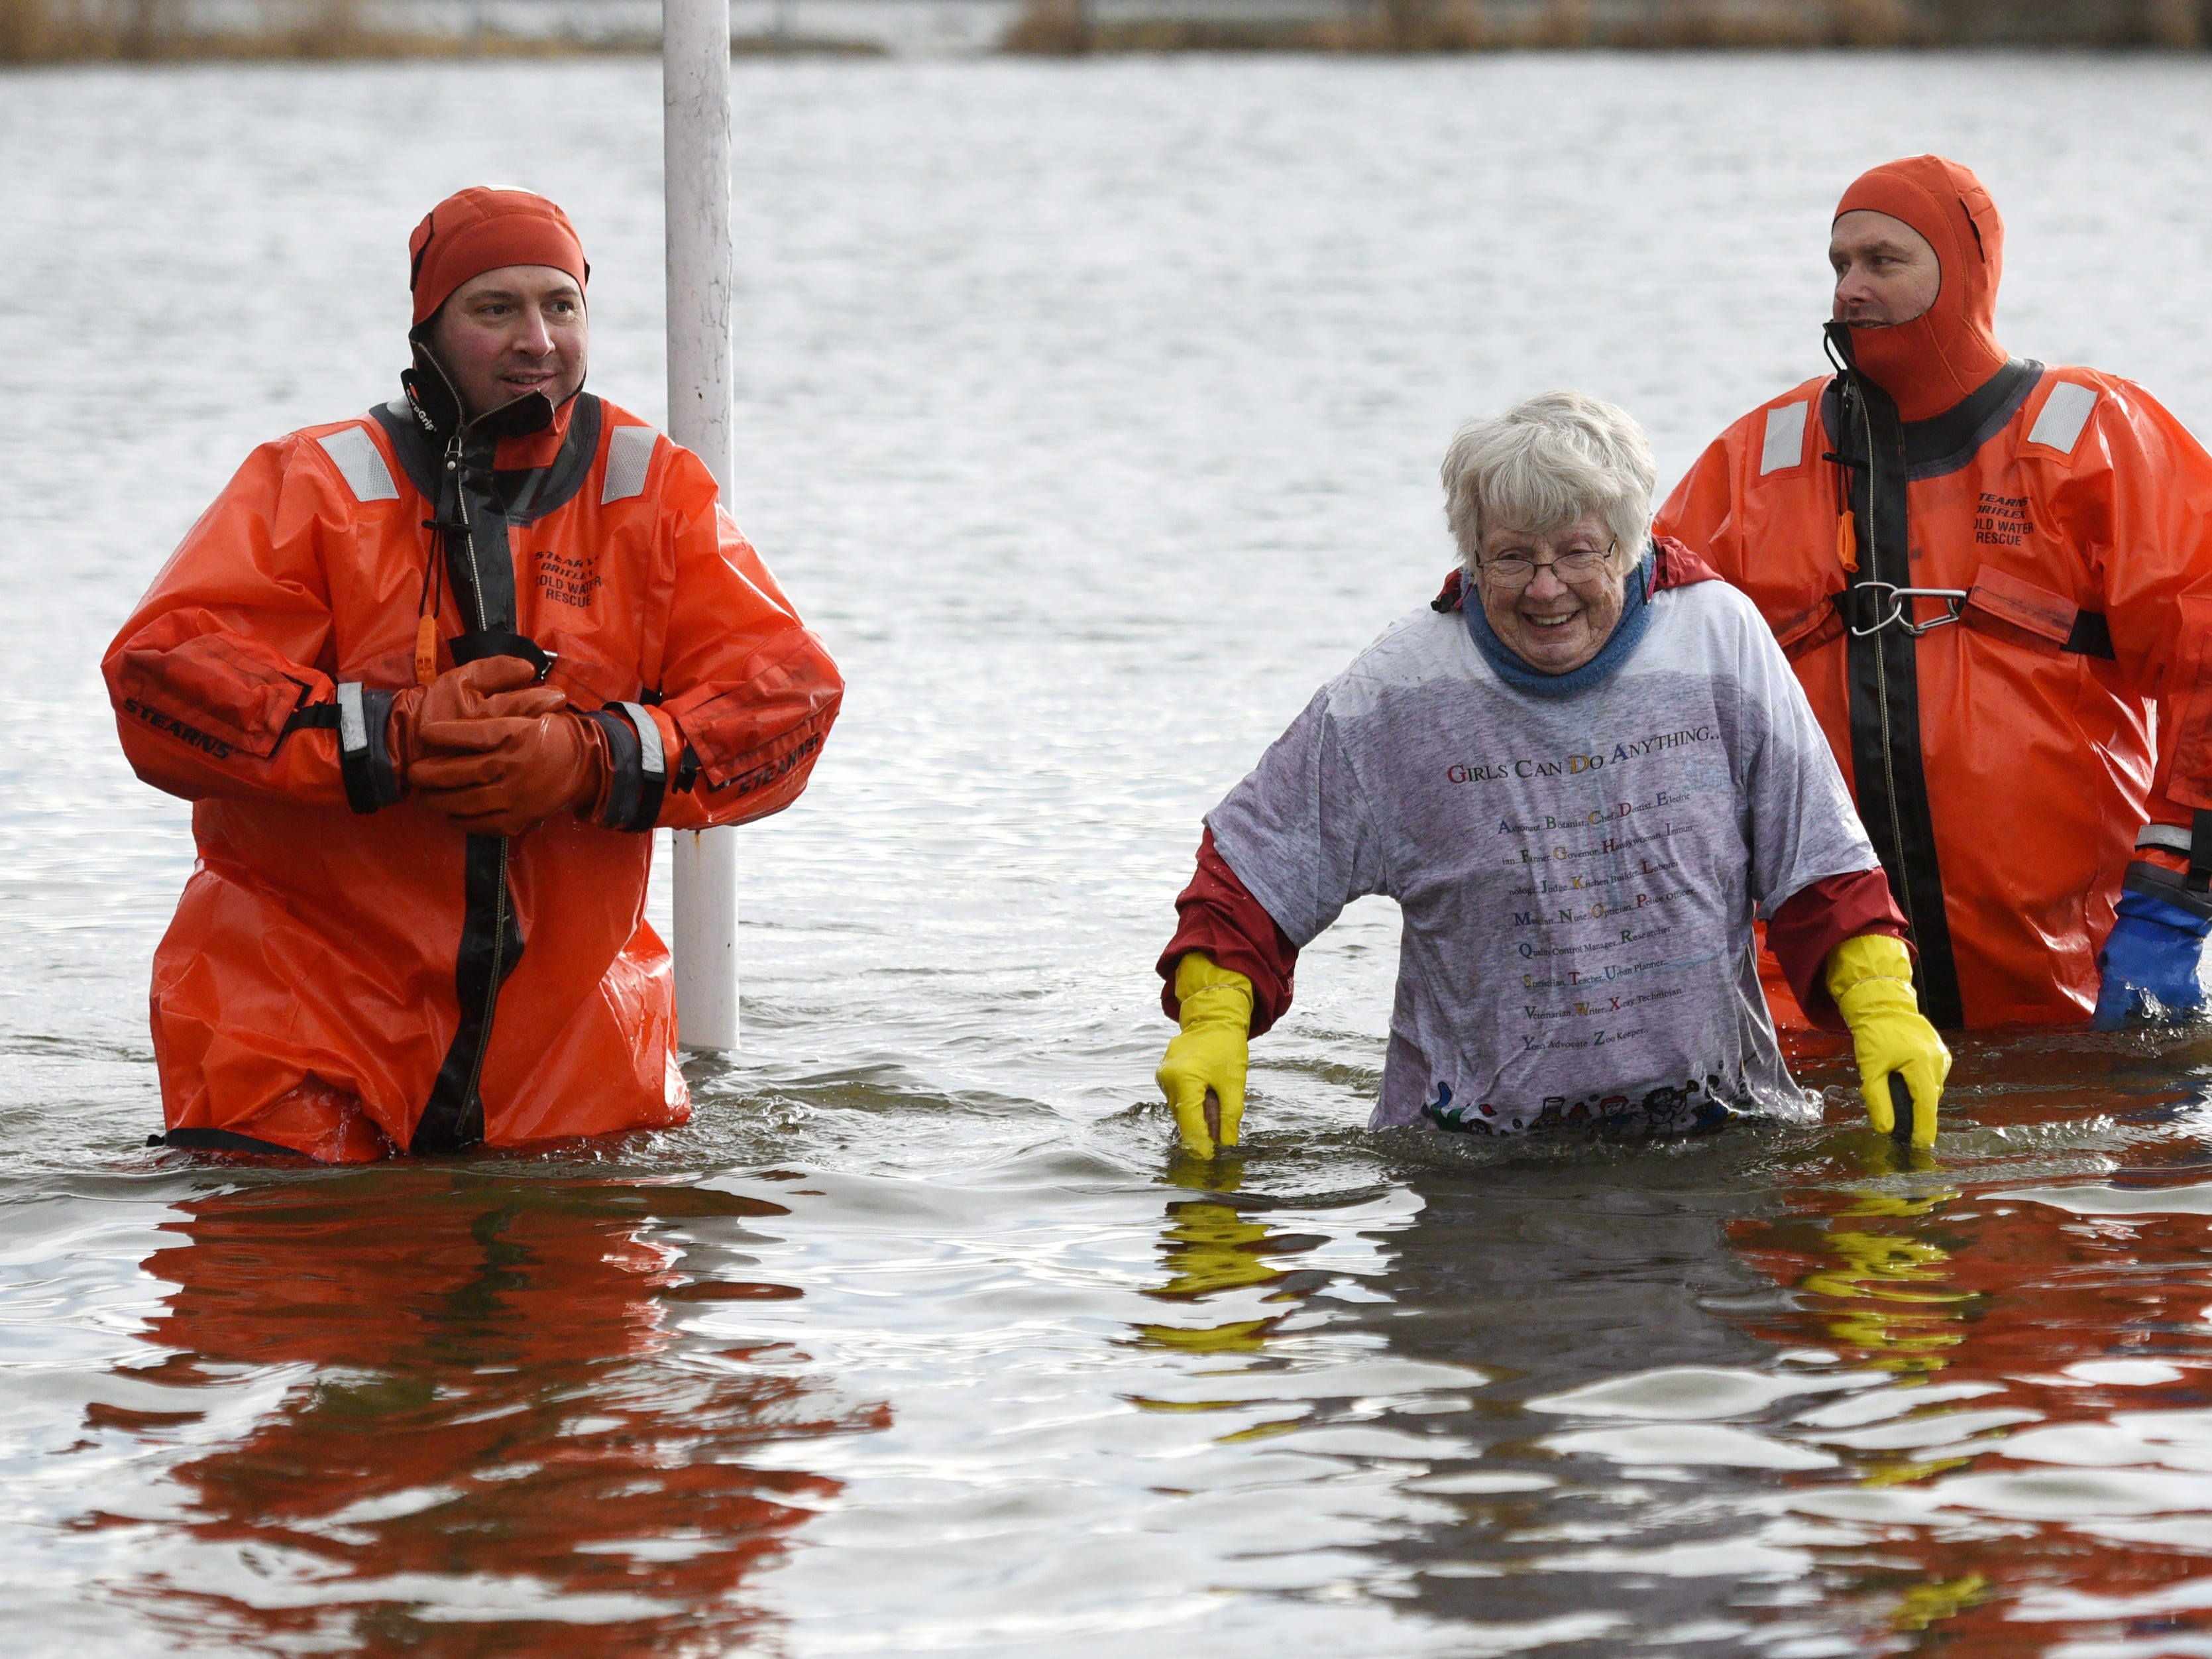 Kay Collins, 82, the oldest participant in the 4th annual Pequannock Polar Plunge, also went the deepest into the lake at Pequannock Valley Park on Sunday, January 6, 2019. Collins circled the pole before dunking into the lake three times.